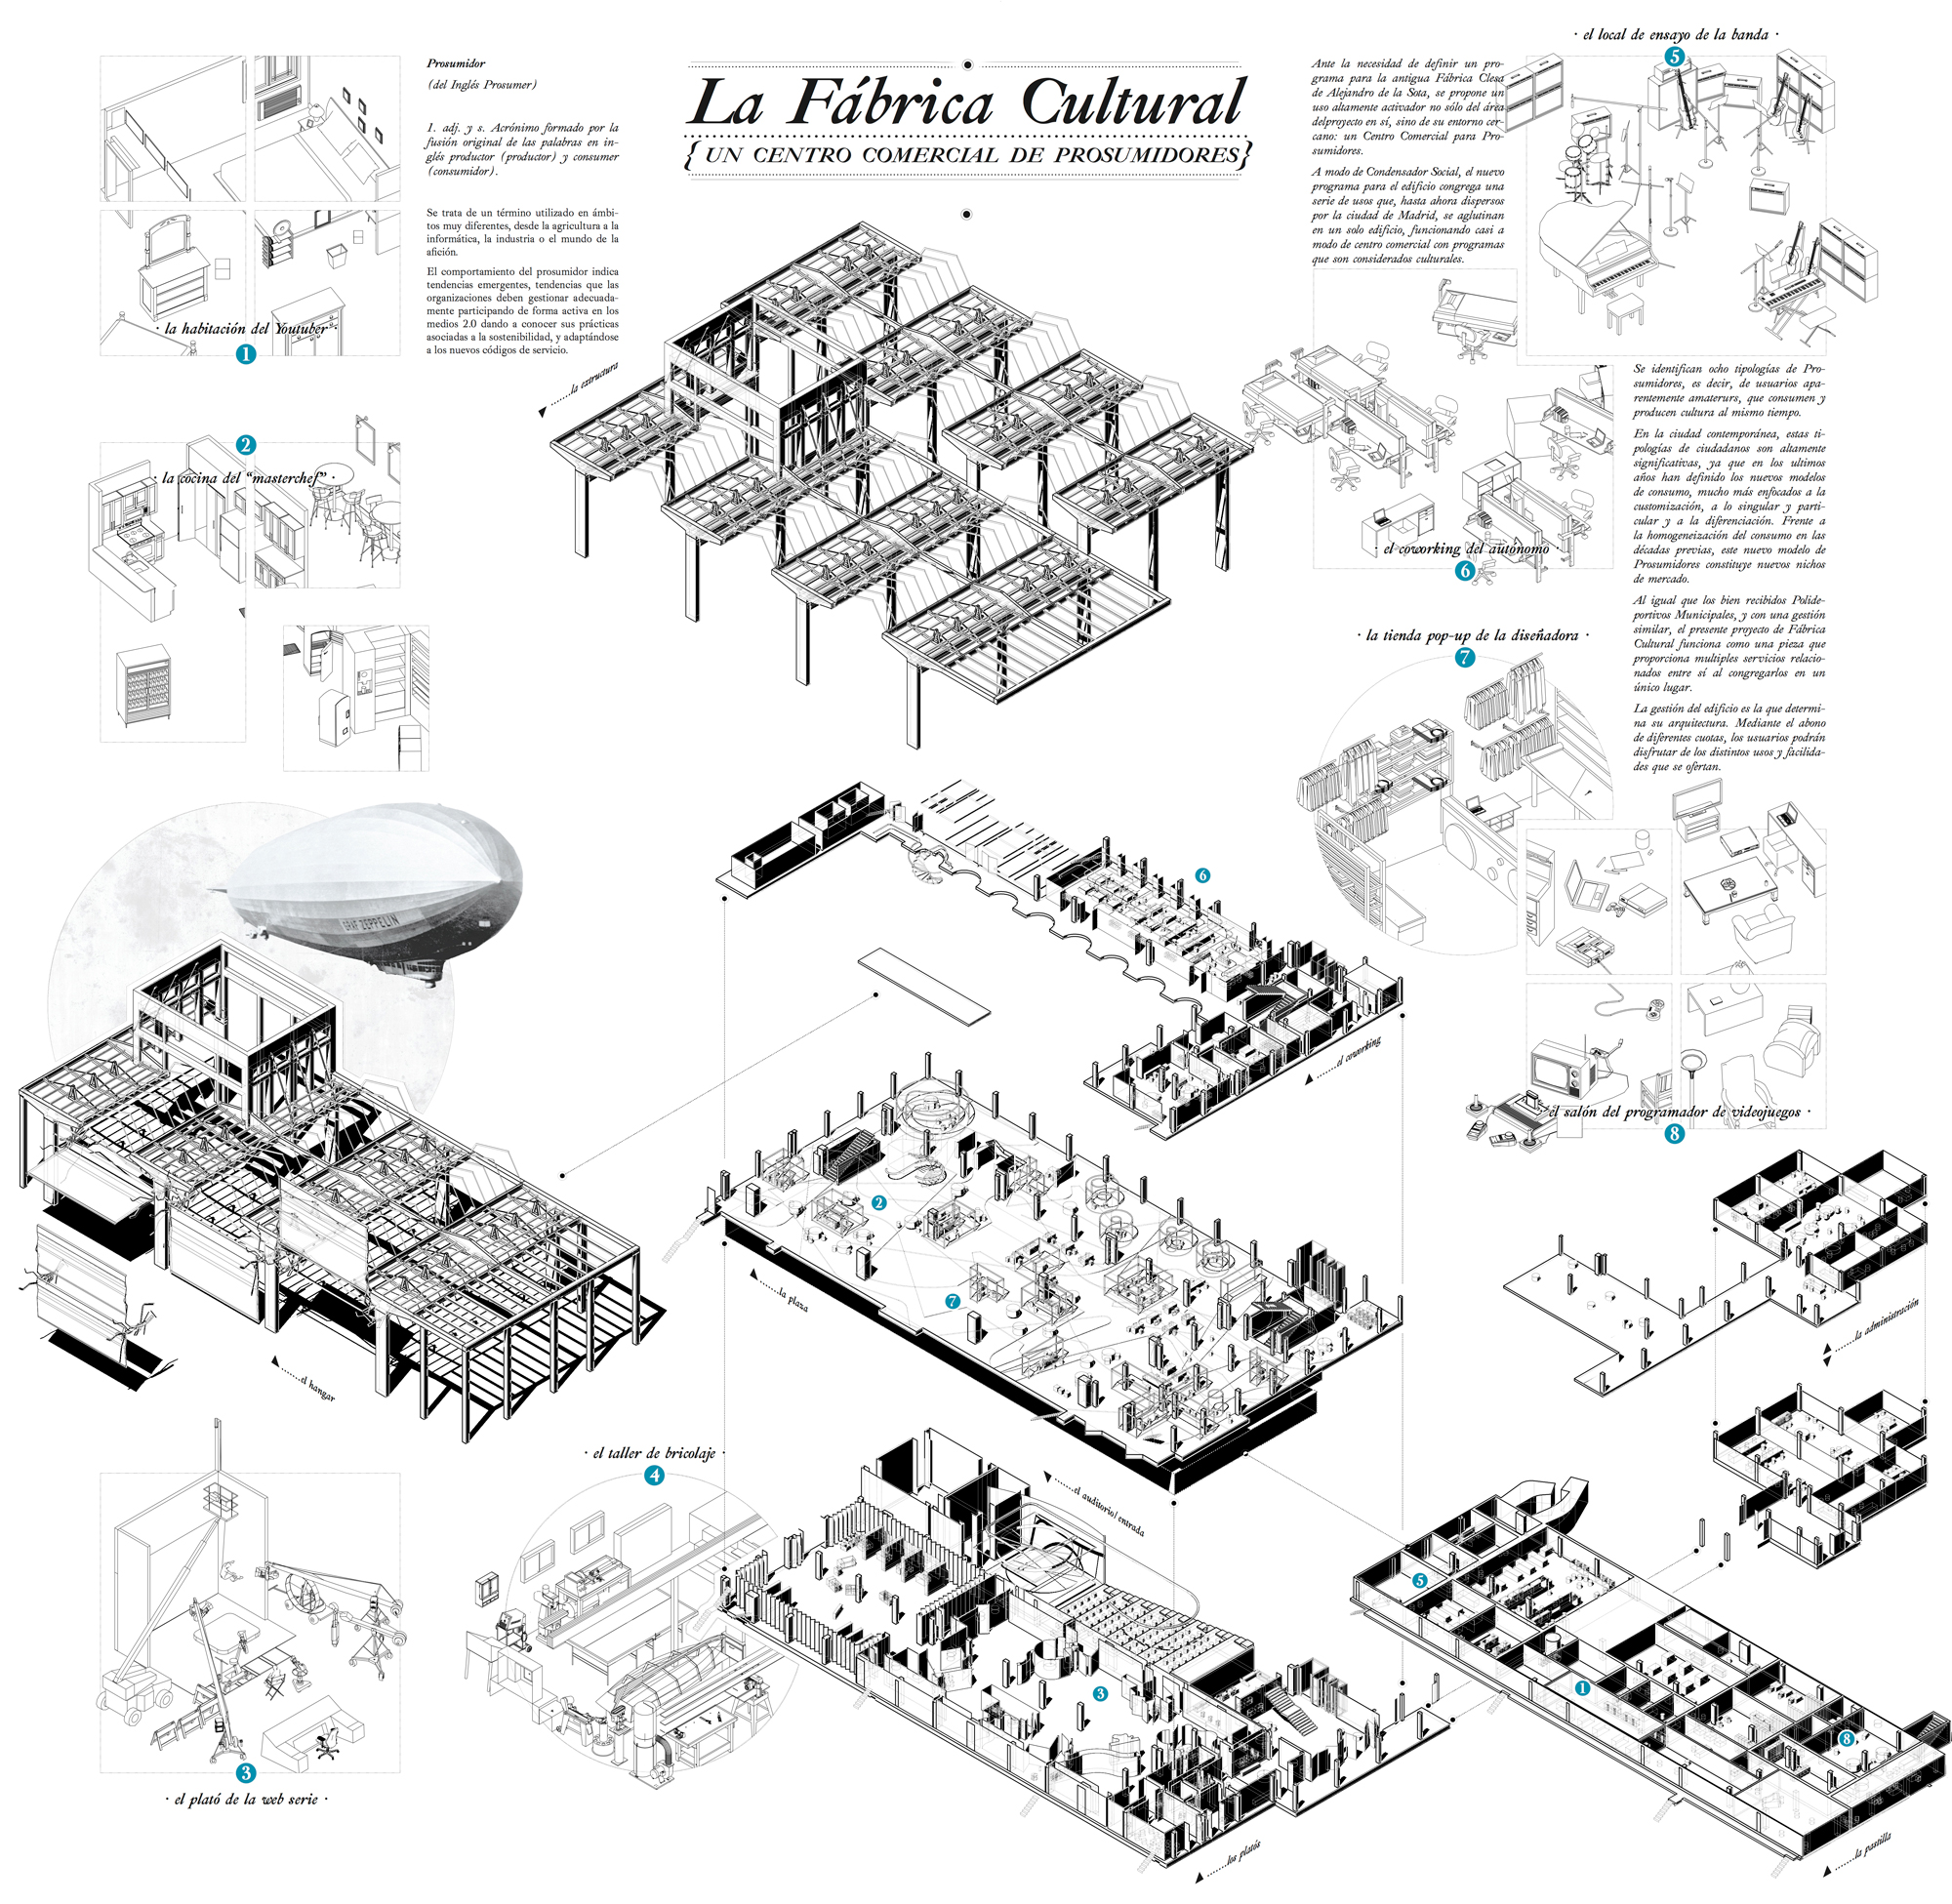 Exploded Axonometry of Cultural Factory Pedro Pitarch